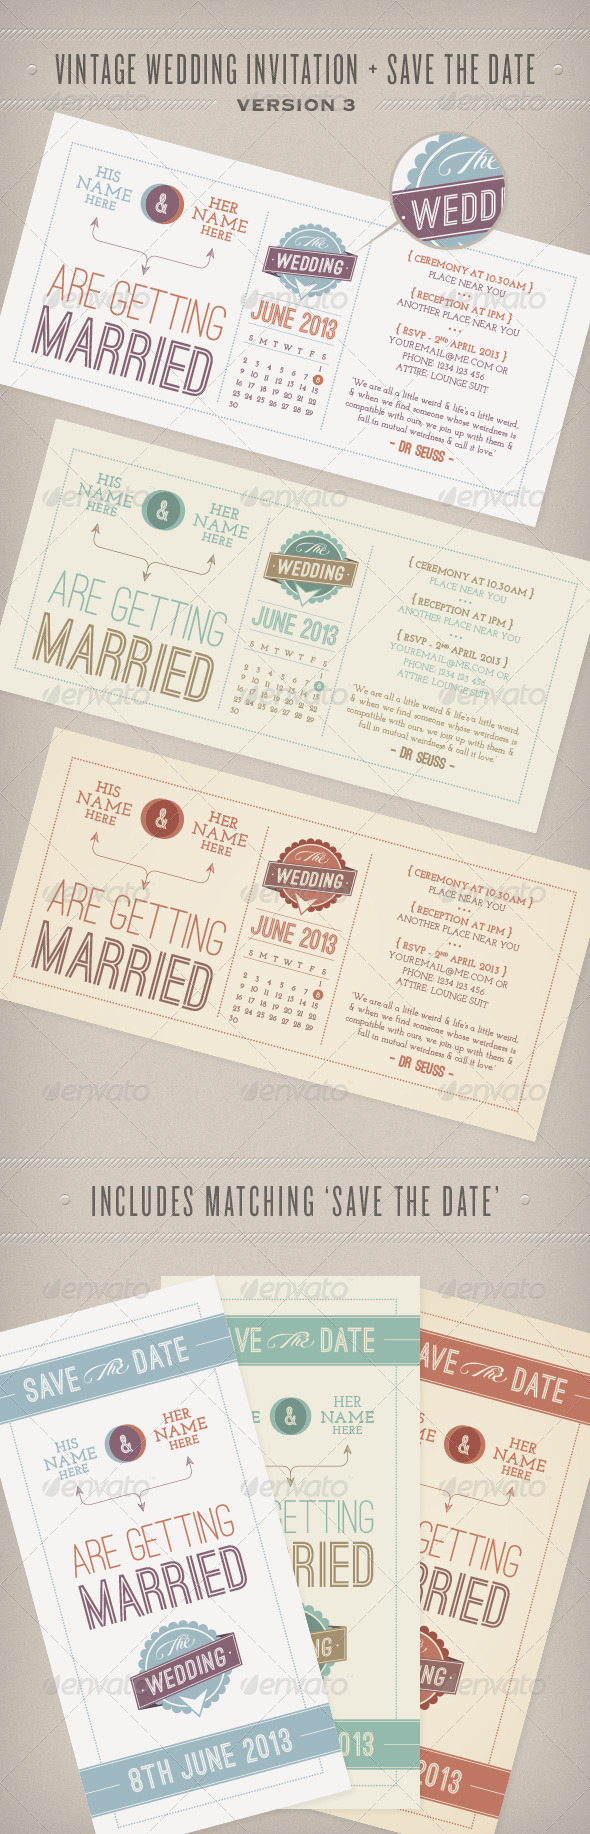 Print template graphicriver vintage wedding invitation for Vintage save the date templates free